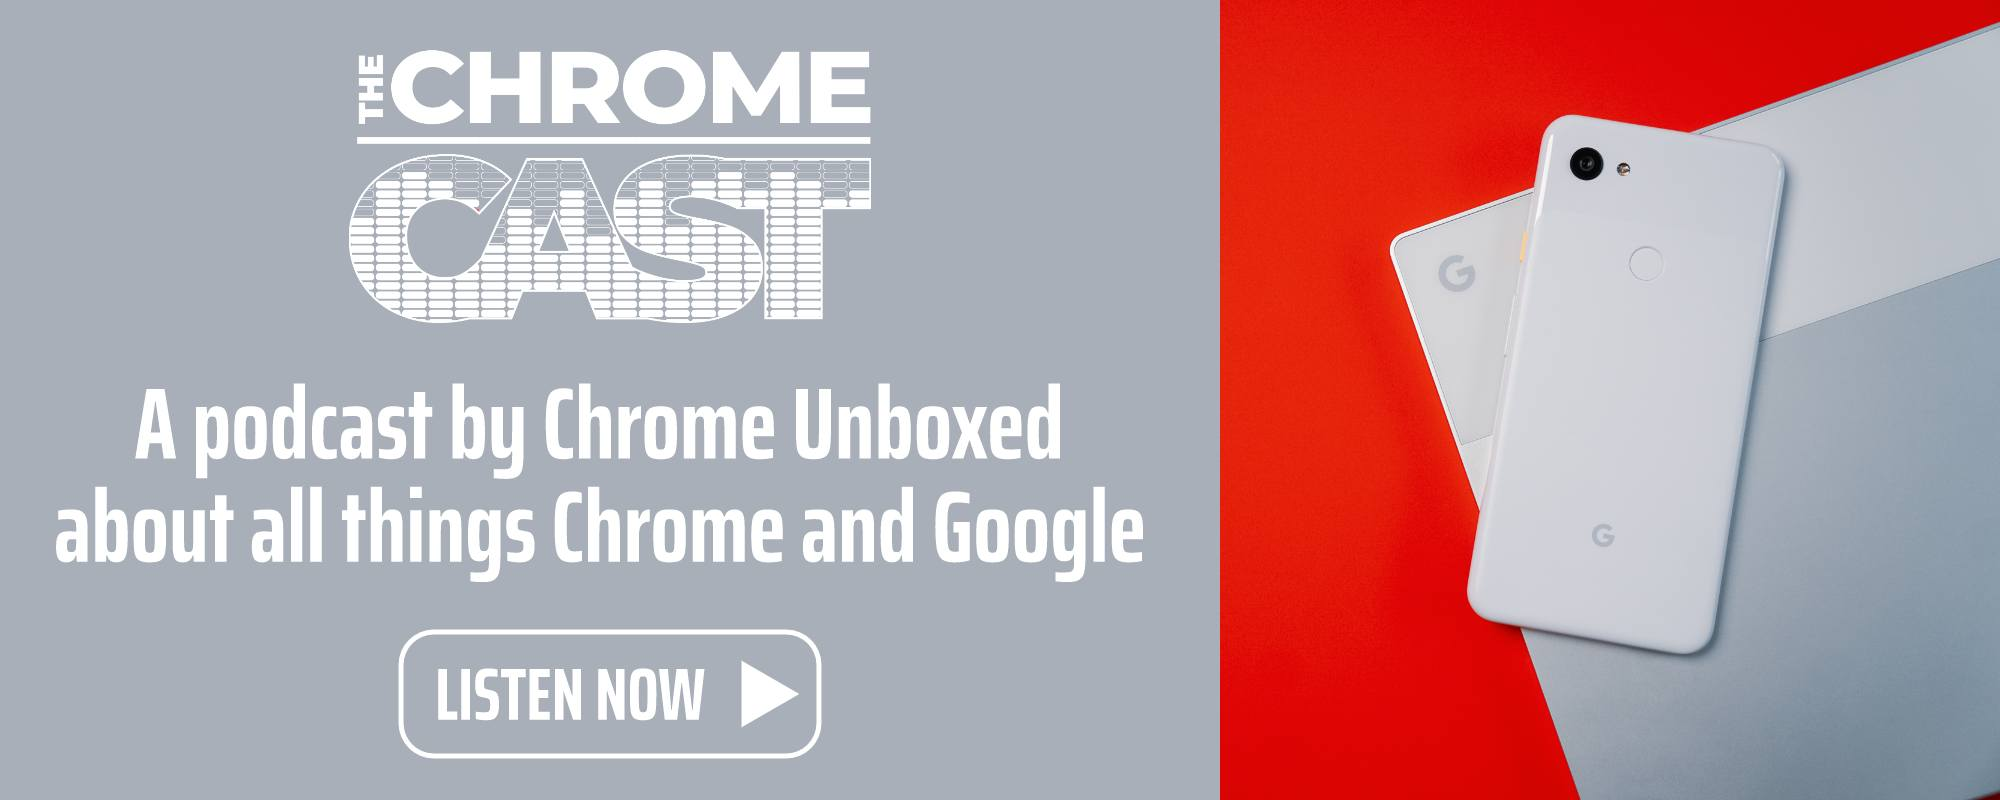 Photo Frames for Chromecast and Nest Hub might be coming to